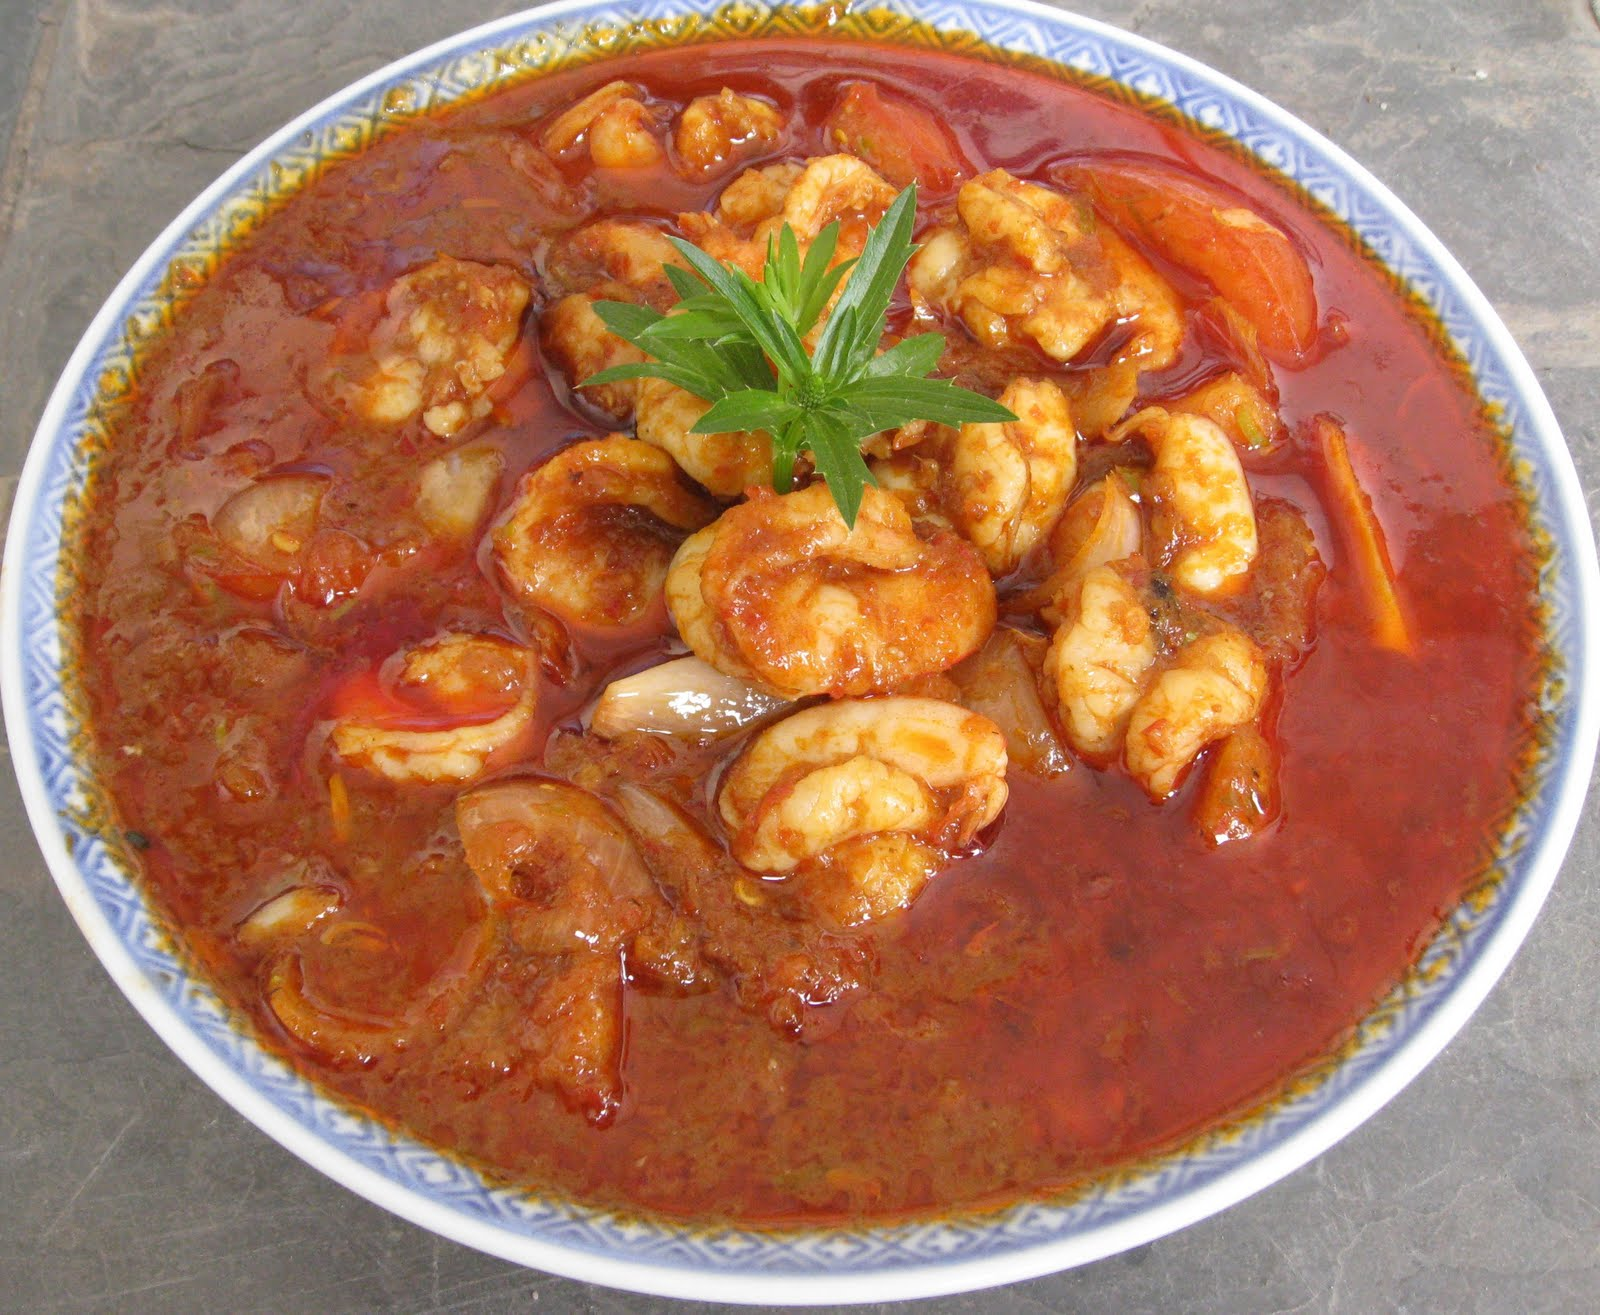 My Asian Kitchen: My Mom's Sambal Udang (Assam Udang)